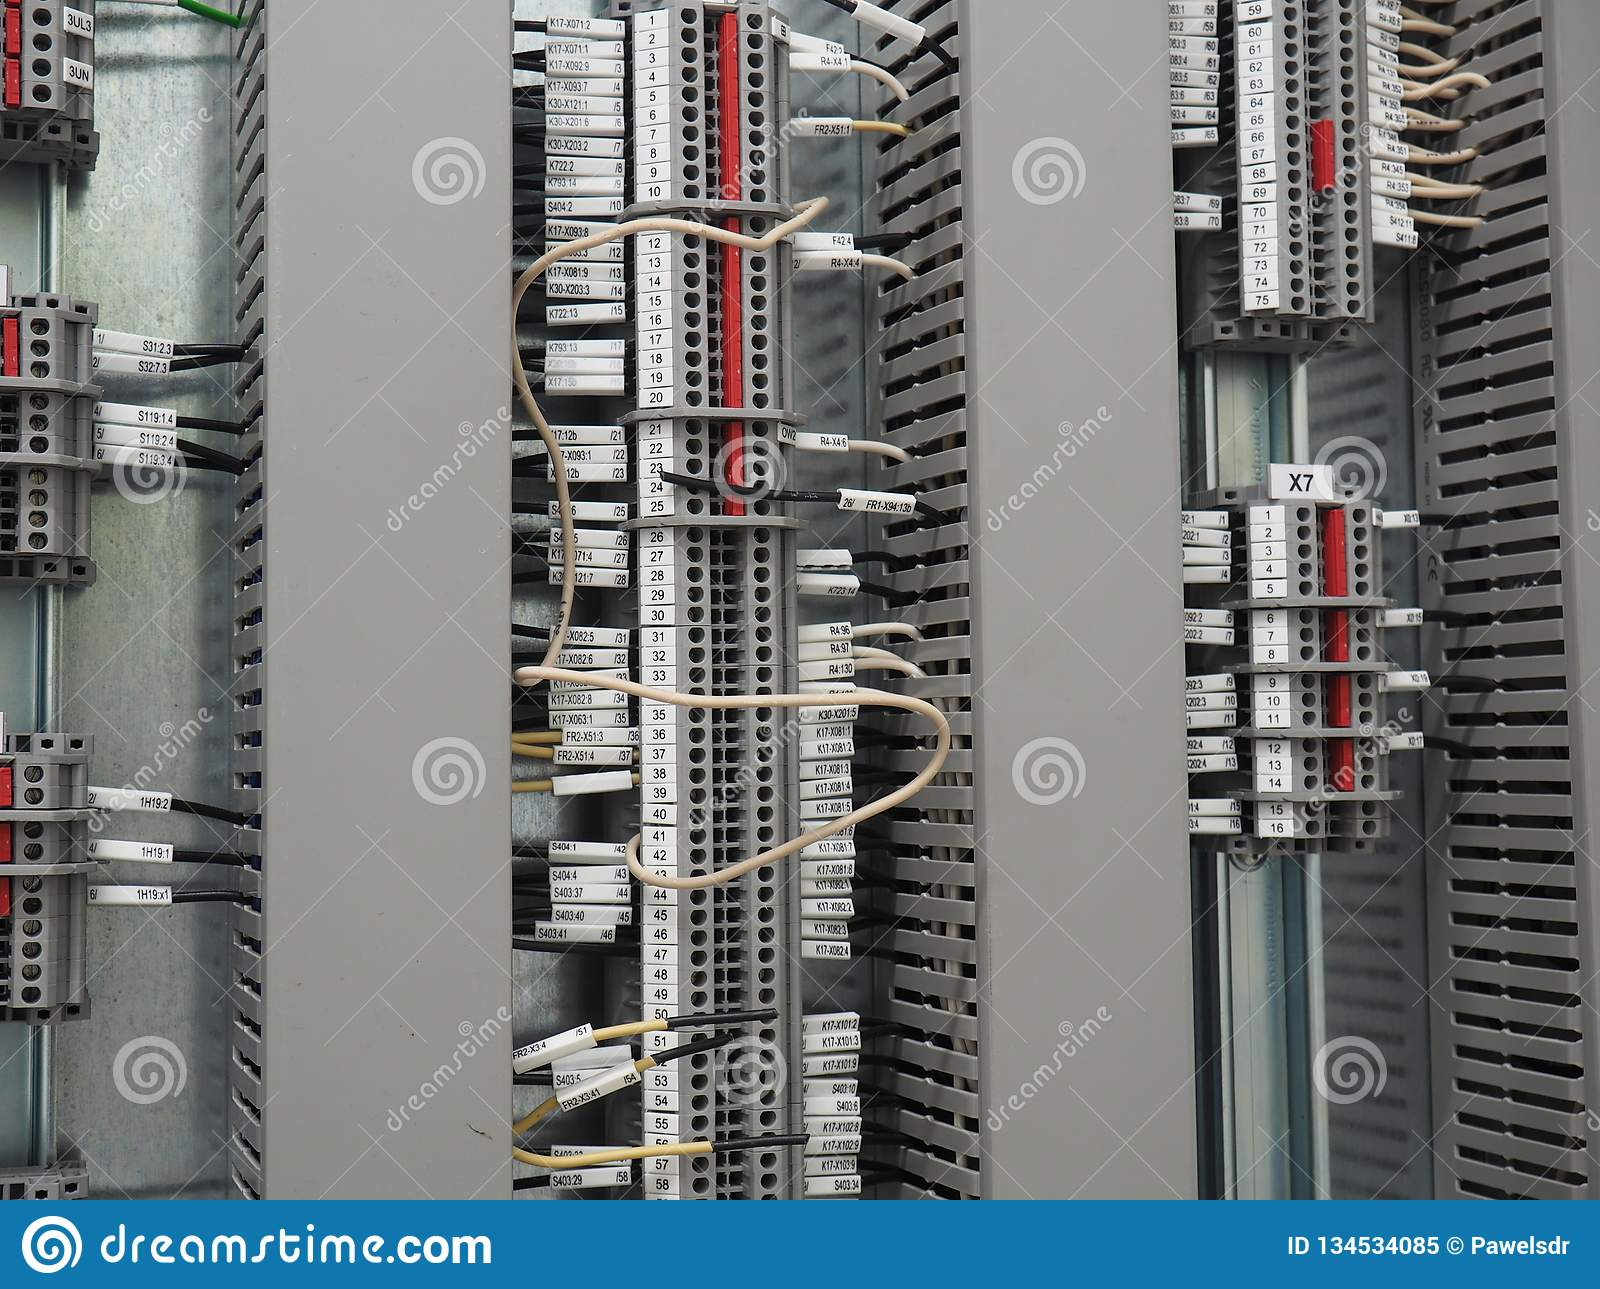 hight resolution of  terminals and three vertical rows of cable trays cables conected in numbered terminals all mounted on the steel plate one white wire in the centre